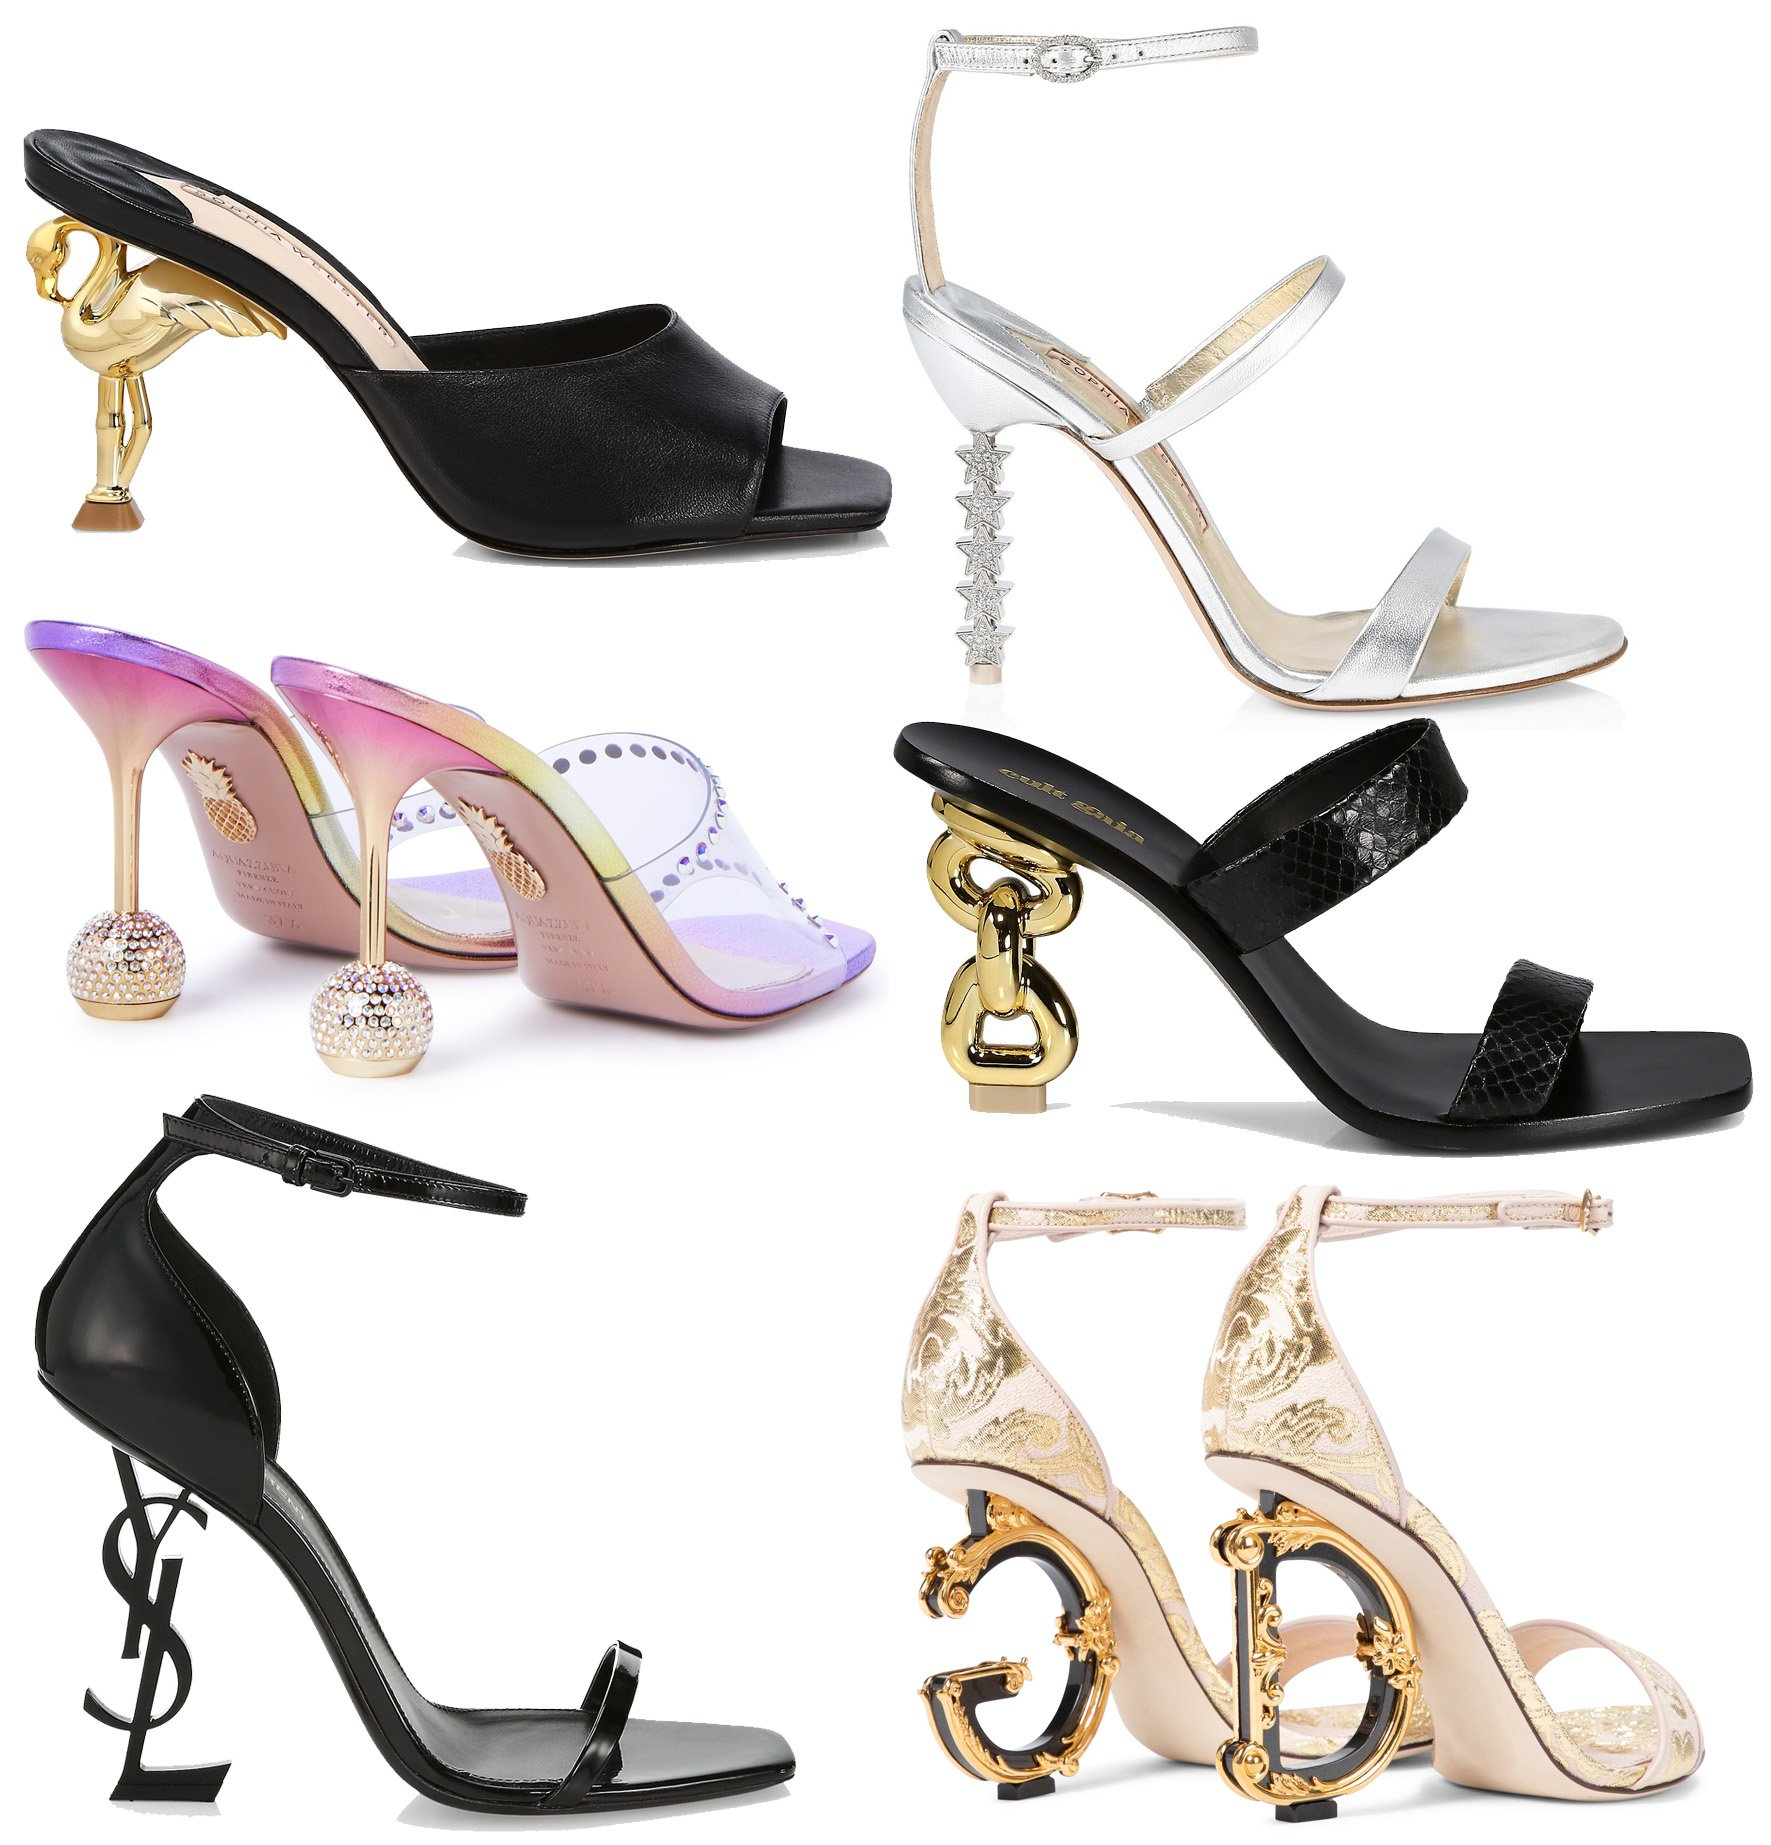 Wear intricately designed heels for a statement-making look